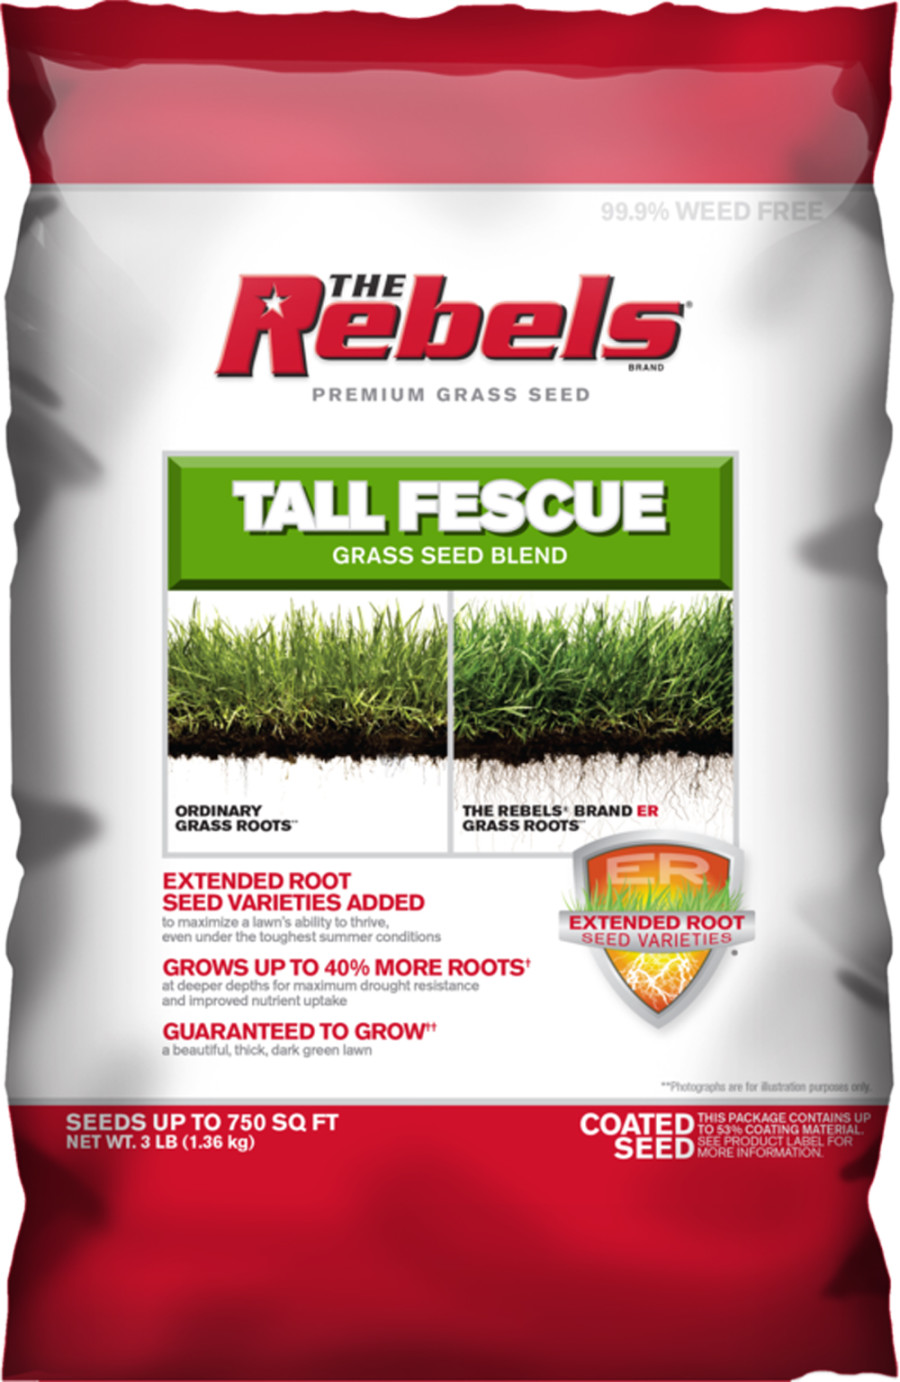 The Rebels Tall Fescue Grass Seed Blend Powder Coated 8ea/3 lb